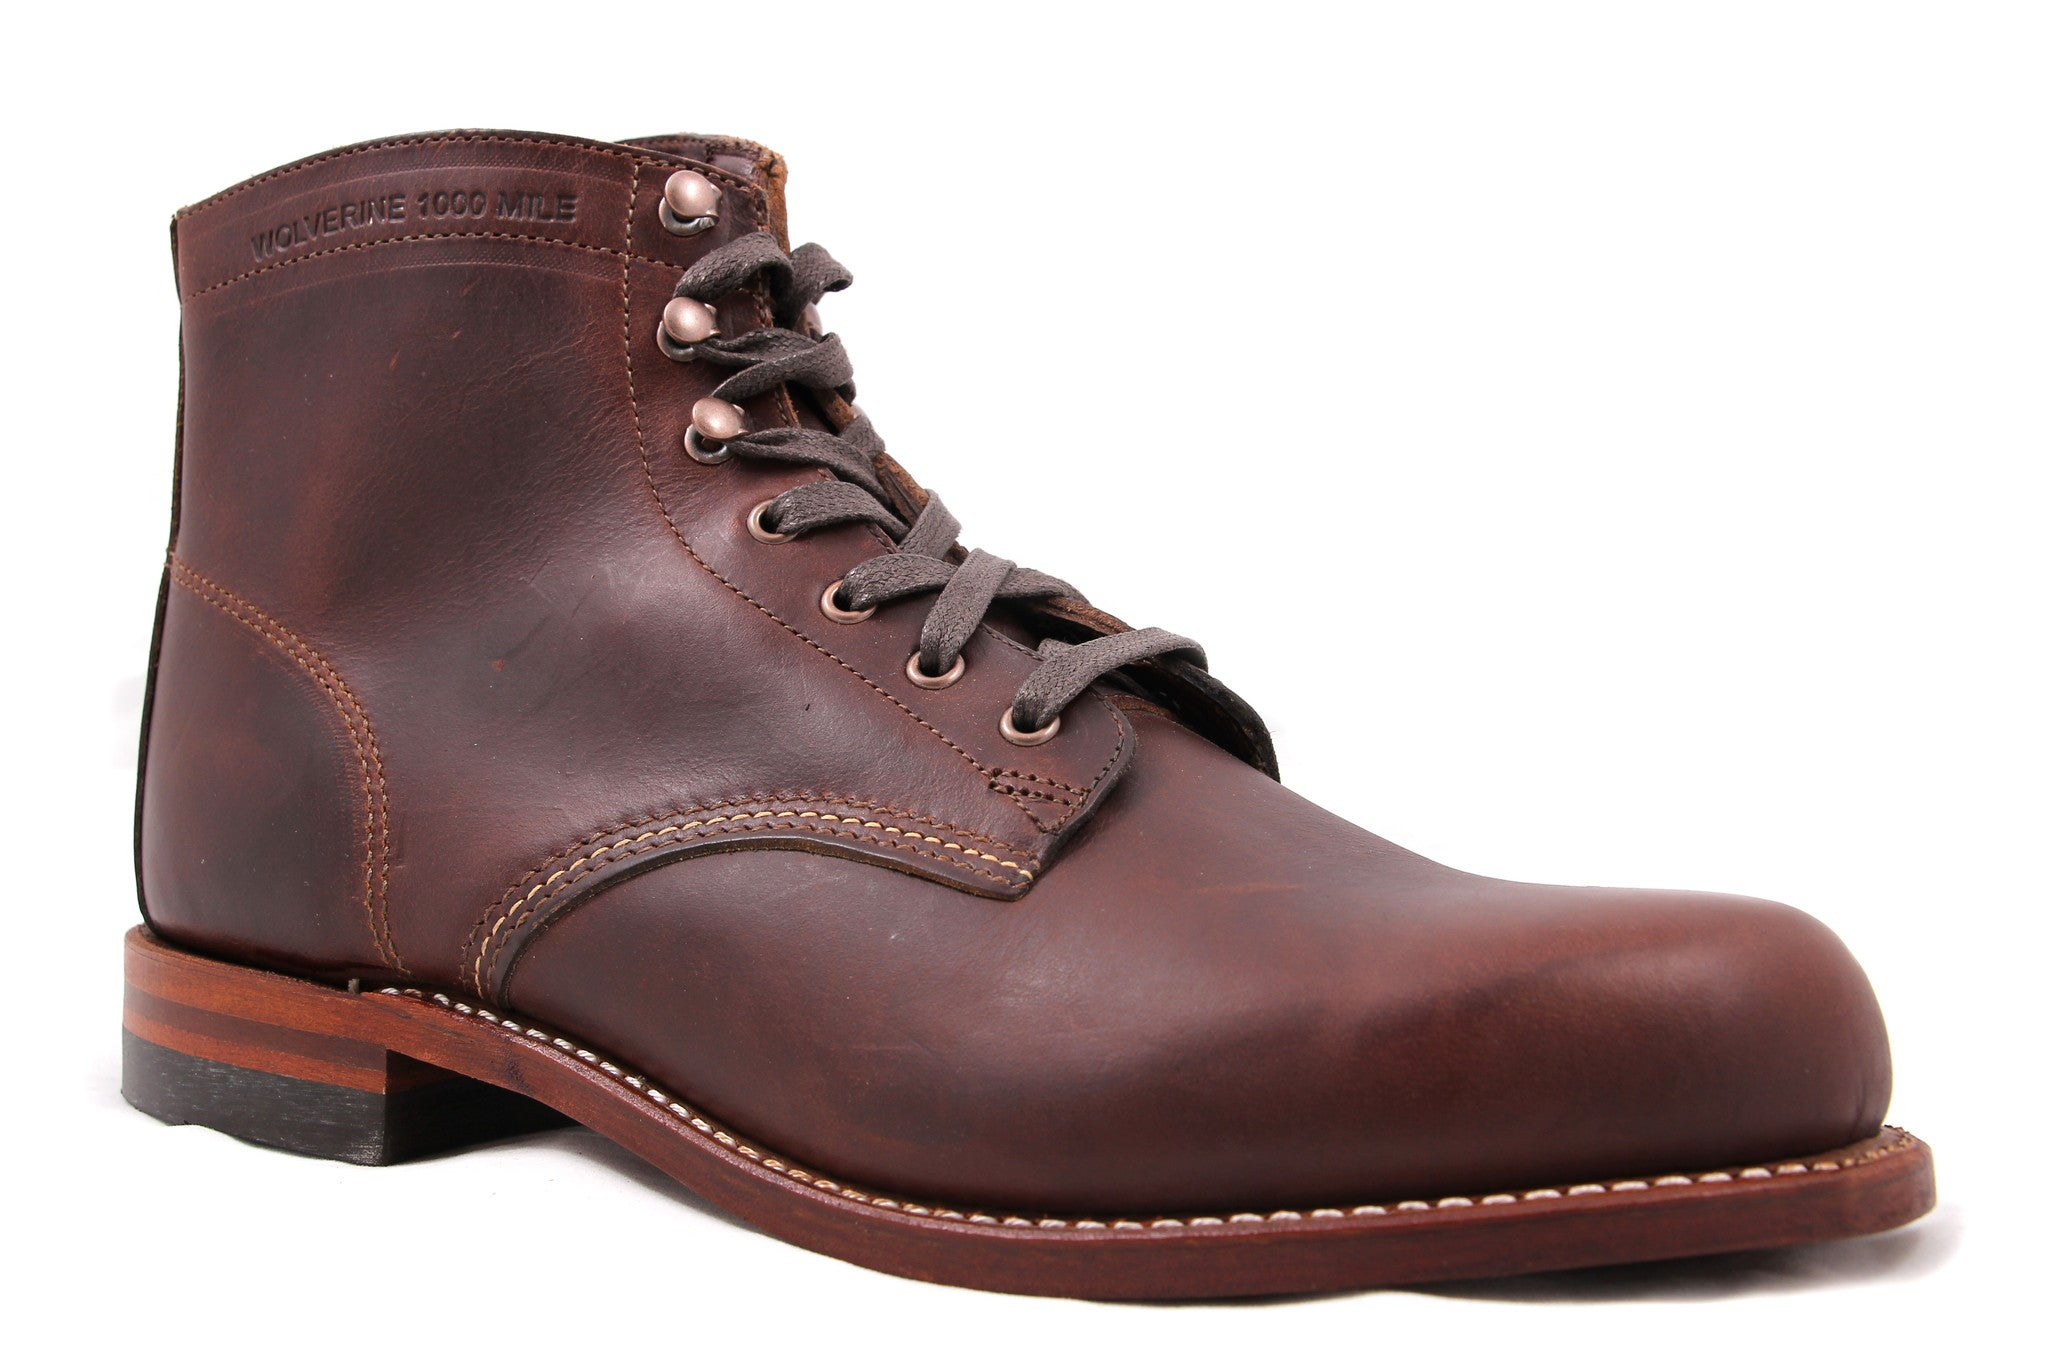 WOLVERINE 1000 MILE BROWN W05301 - COSMOTOG